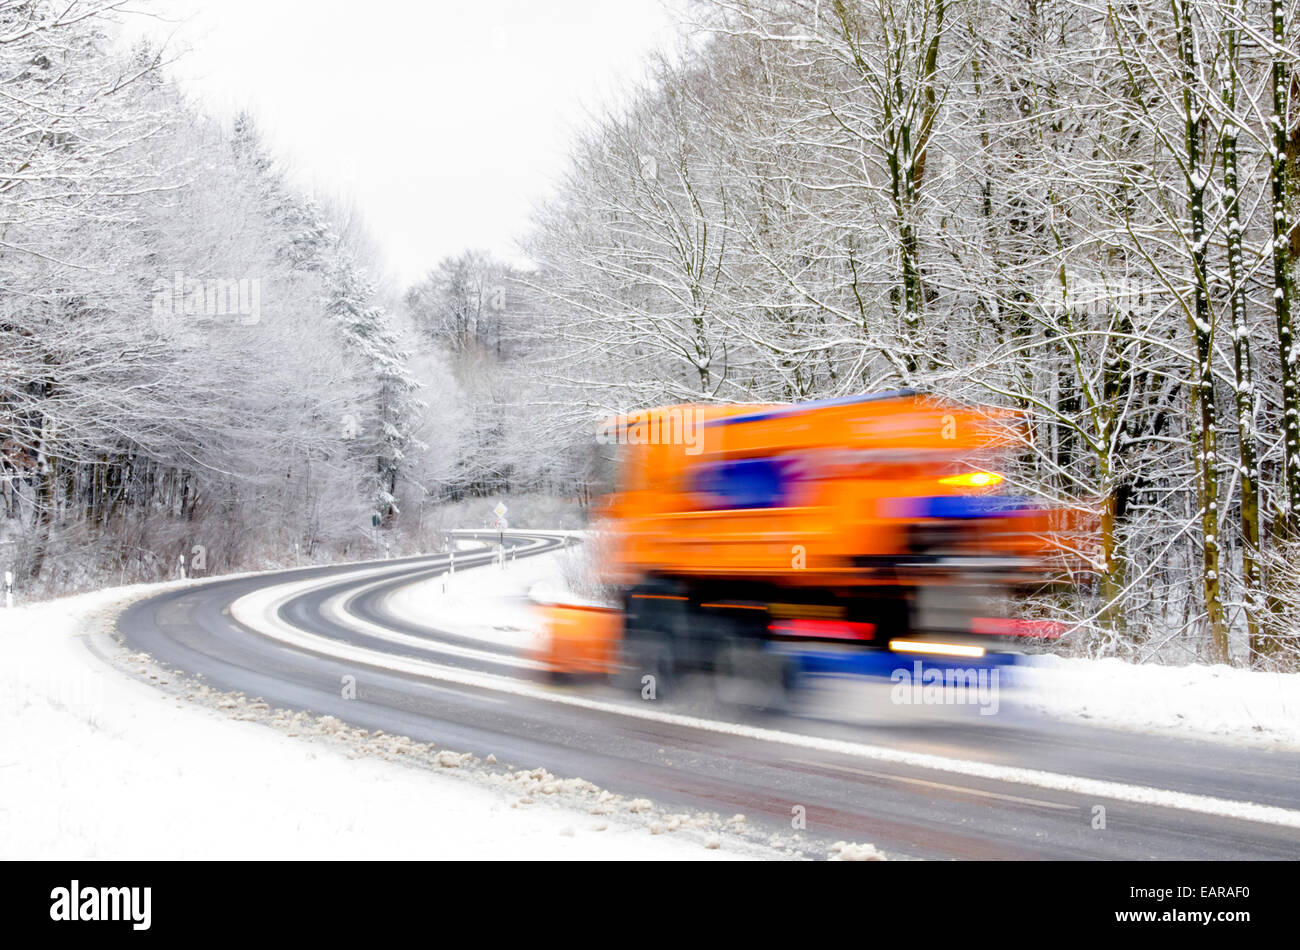 Snowplow working on icy winter road, vehicle blurred - Stock Image